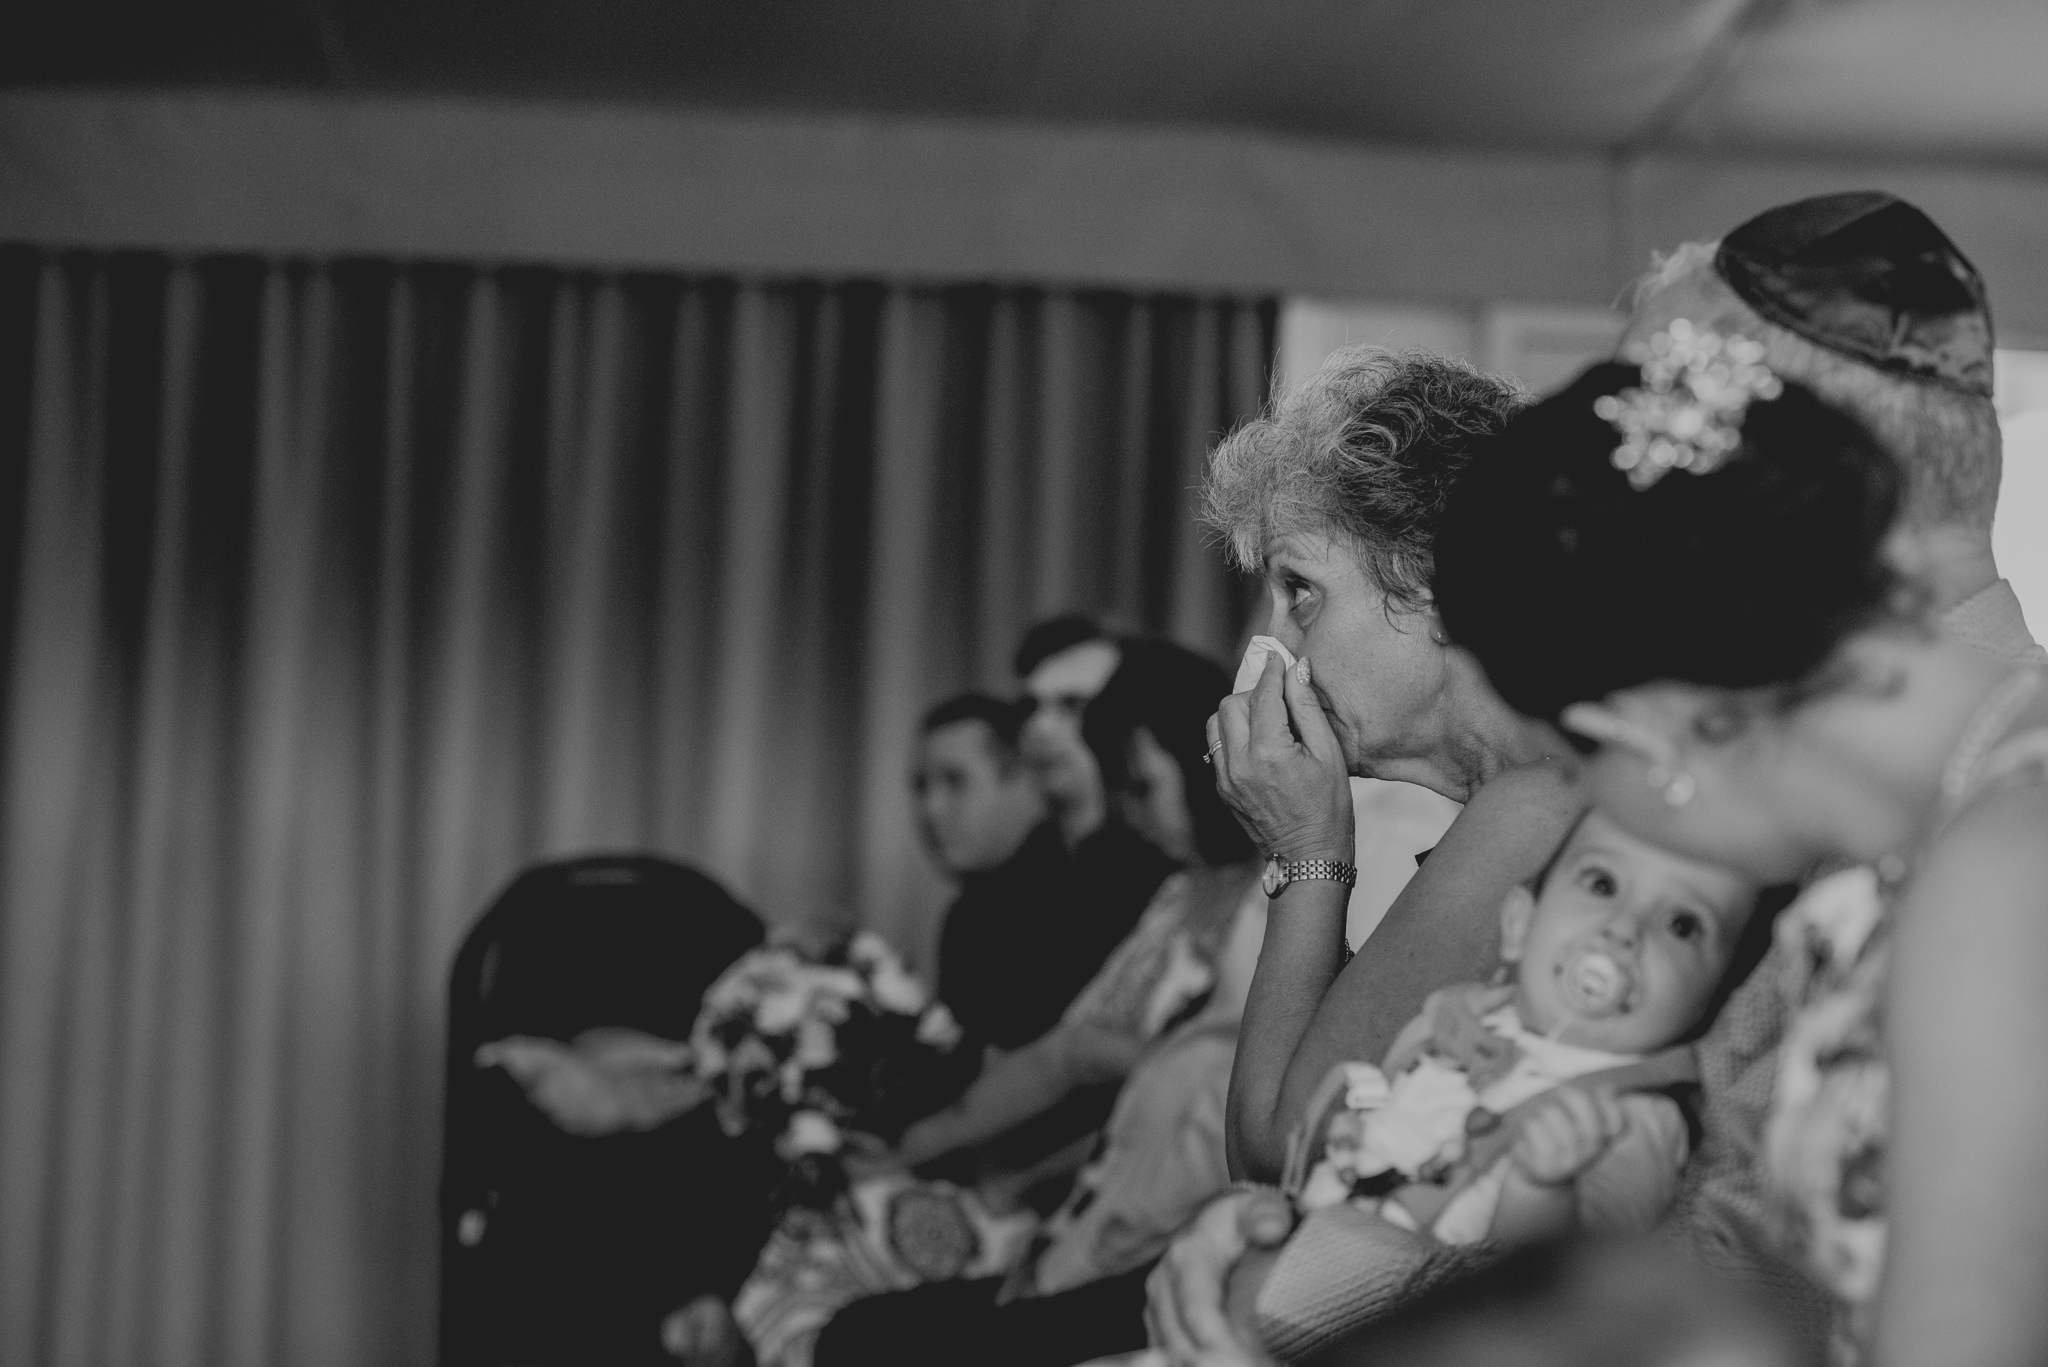 Mother of the groom wipes her nose during a wedding